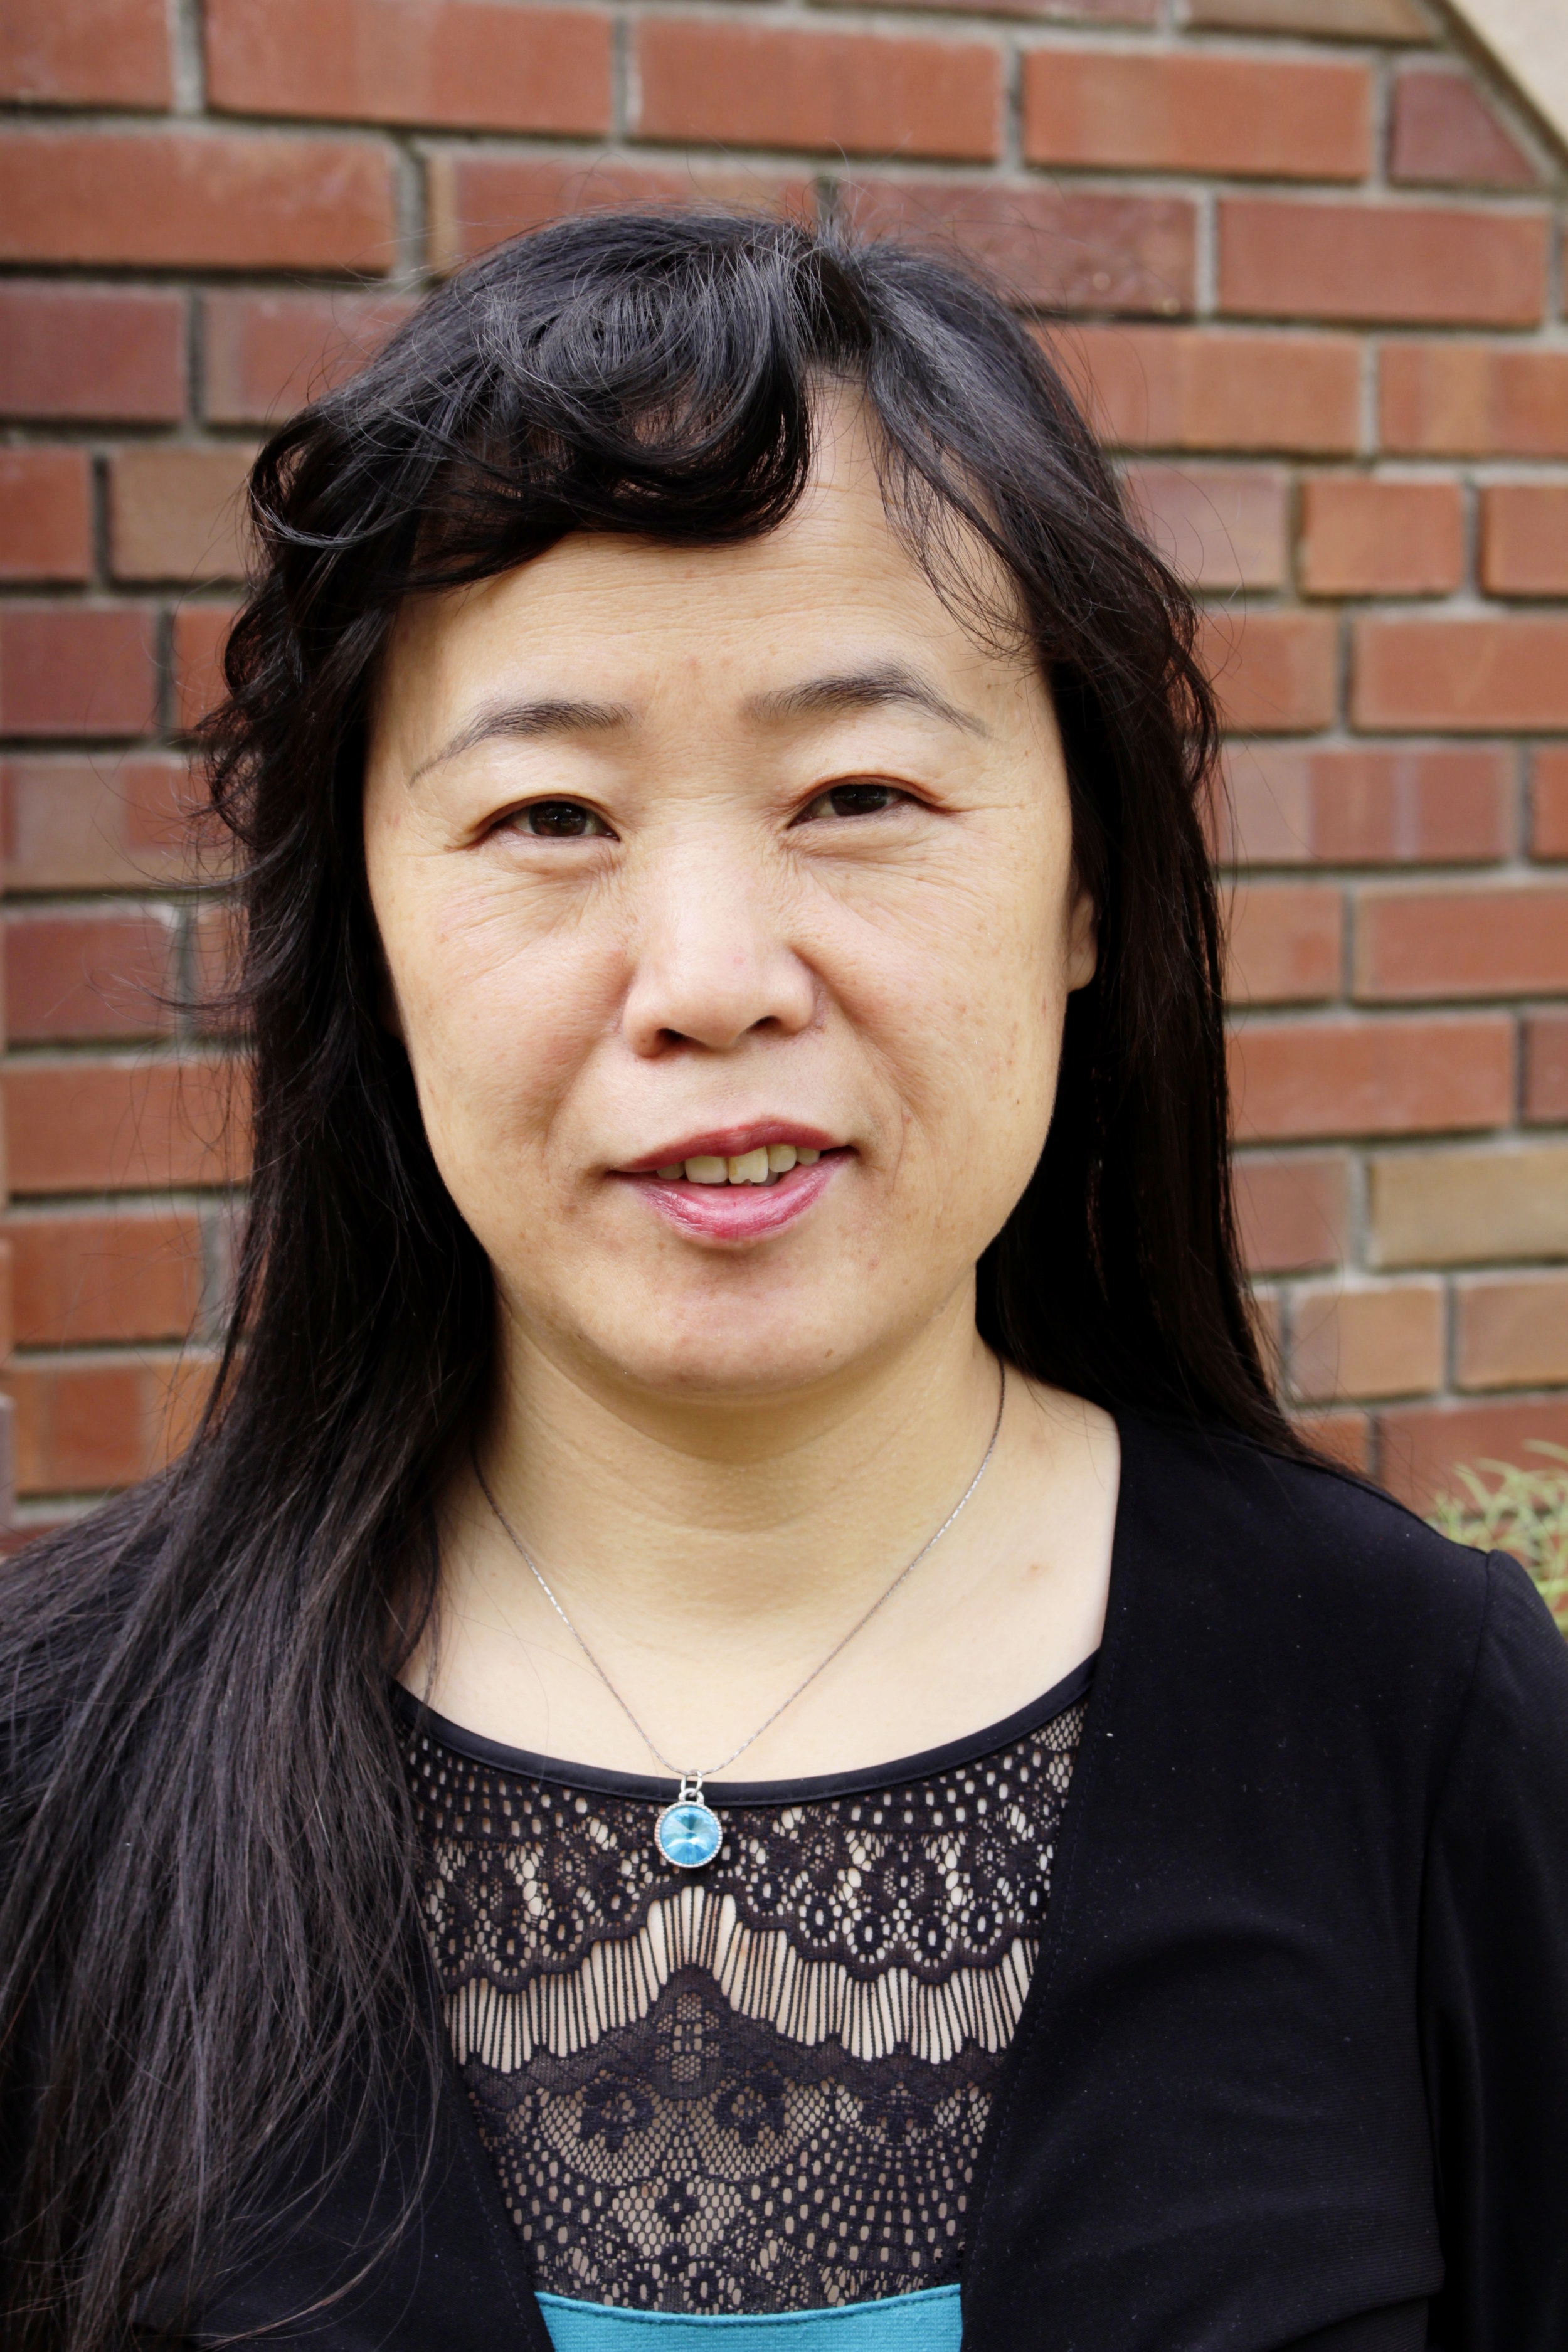 Hong Ma L.Ac - Dr. Ma is certified in acupuncture and Oriental medicine and a Colorado licensed acupuncturists. She teaches at the Colorado School of traditional medicine. She received her Bachelor of medicine from Shandong University of Traditional Chinese Medicine, Jinan PR China and has worked as a doctor for more than 20 years in China and the U.S.A. She has published many articles in the Journal of TCM in China. She is a knowledgeable practitioner with extensive clinical experience in TCM. She specializes in the treatment of wind stroke, women's medicine, immune disorder, endocrine disorders and all kinds of pain. Hong Ma skillfully uses techniques such as acupuncture, moxibustion, herbal medicine, Tuina, auricular points and foot points.